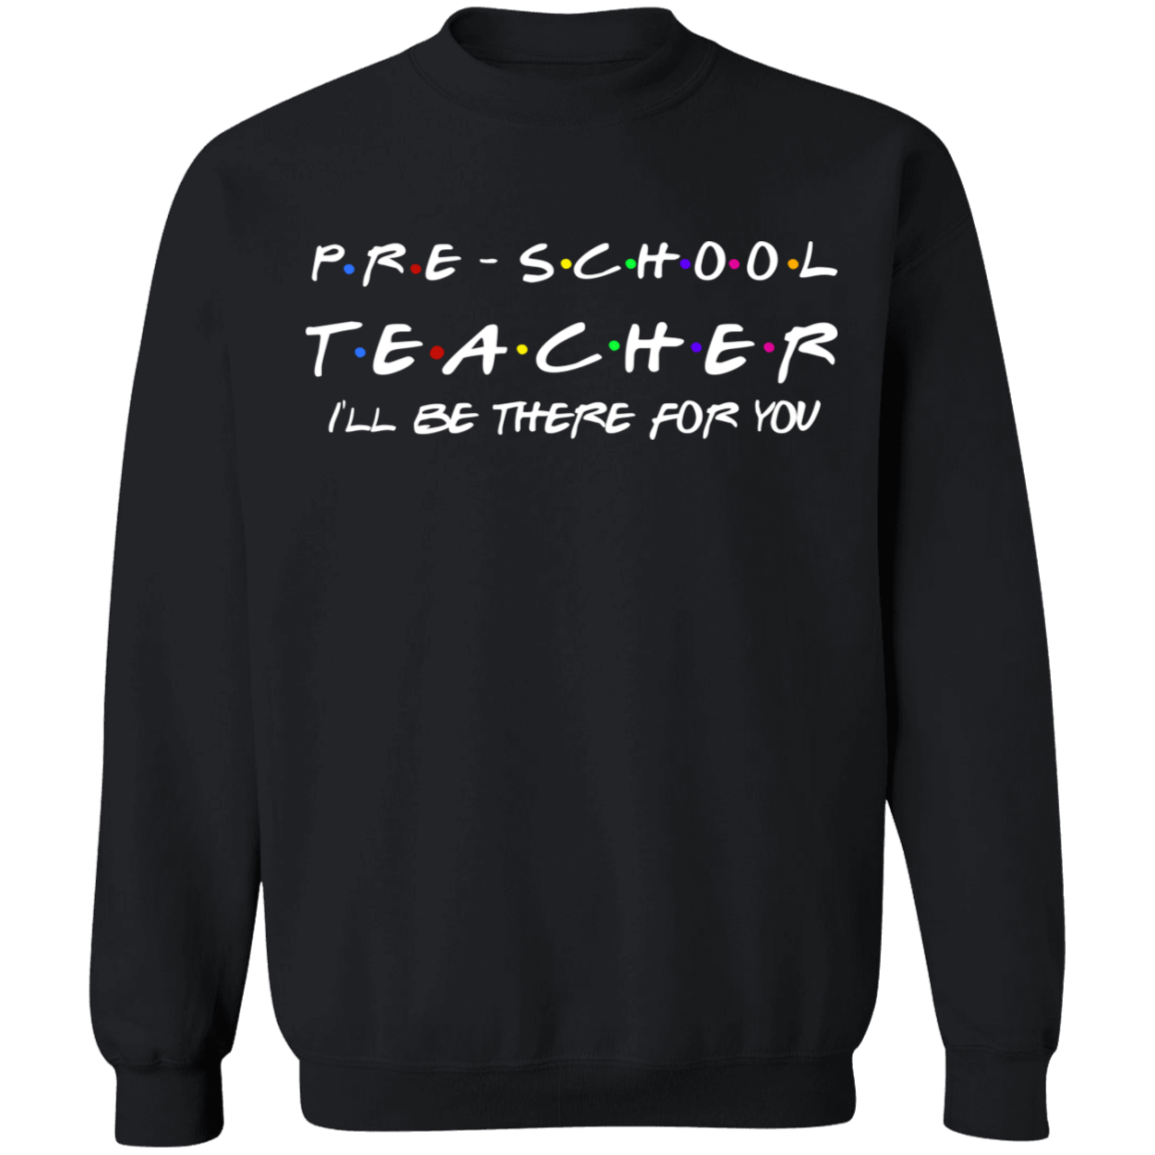 Pre-school Teacher I'll be there for you  Crewneck Pullover Sweatshirt  8 oz.